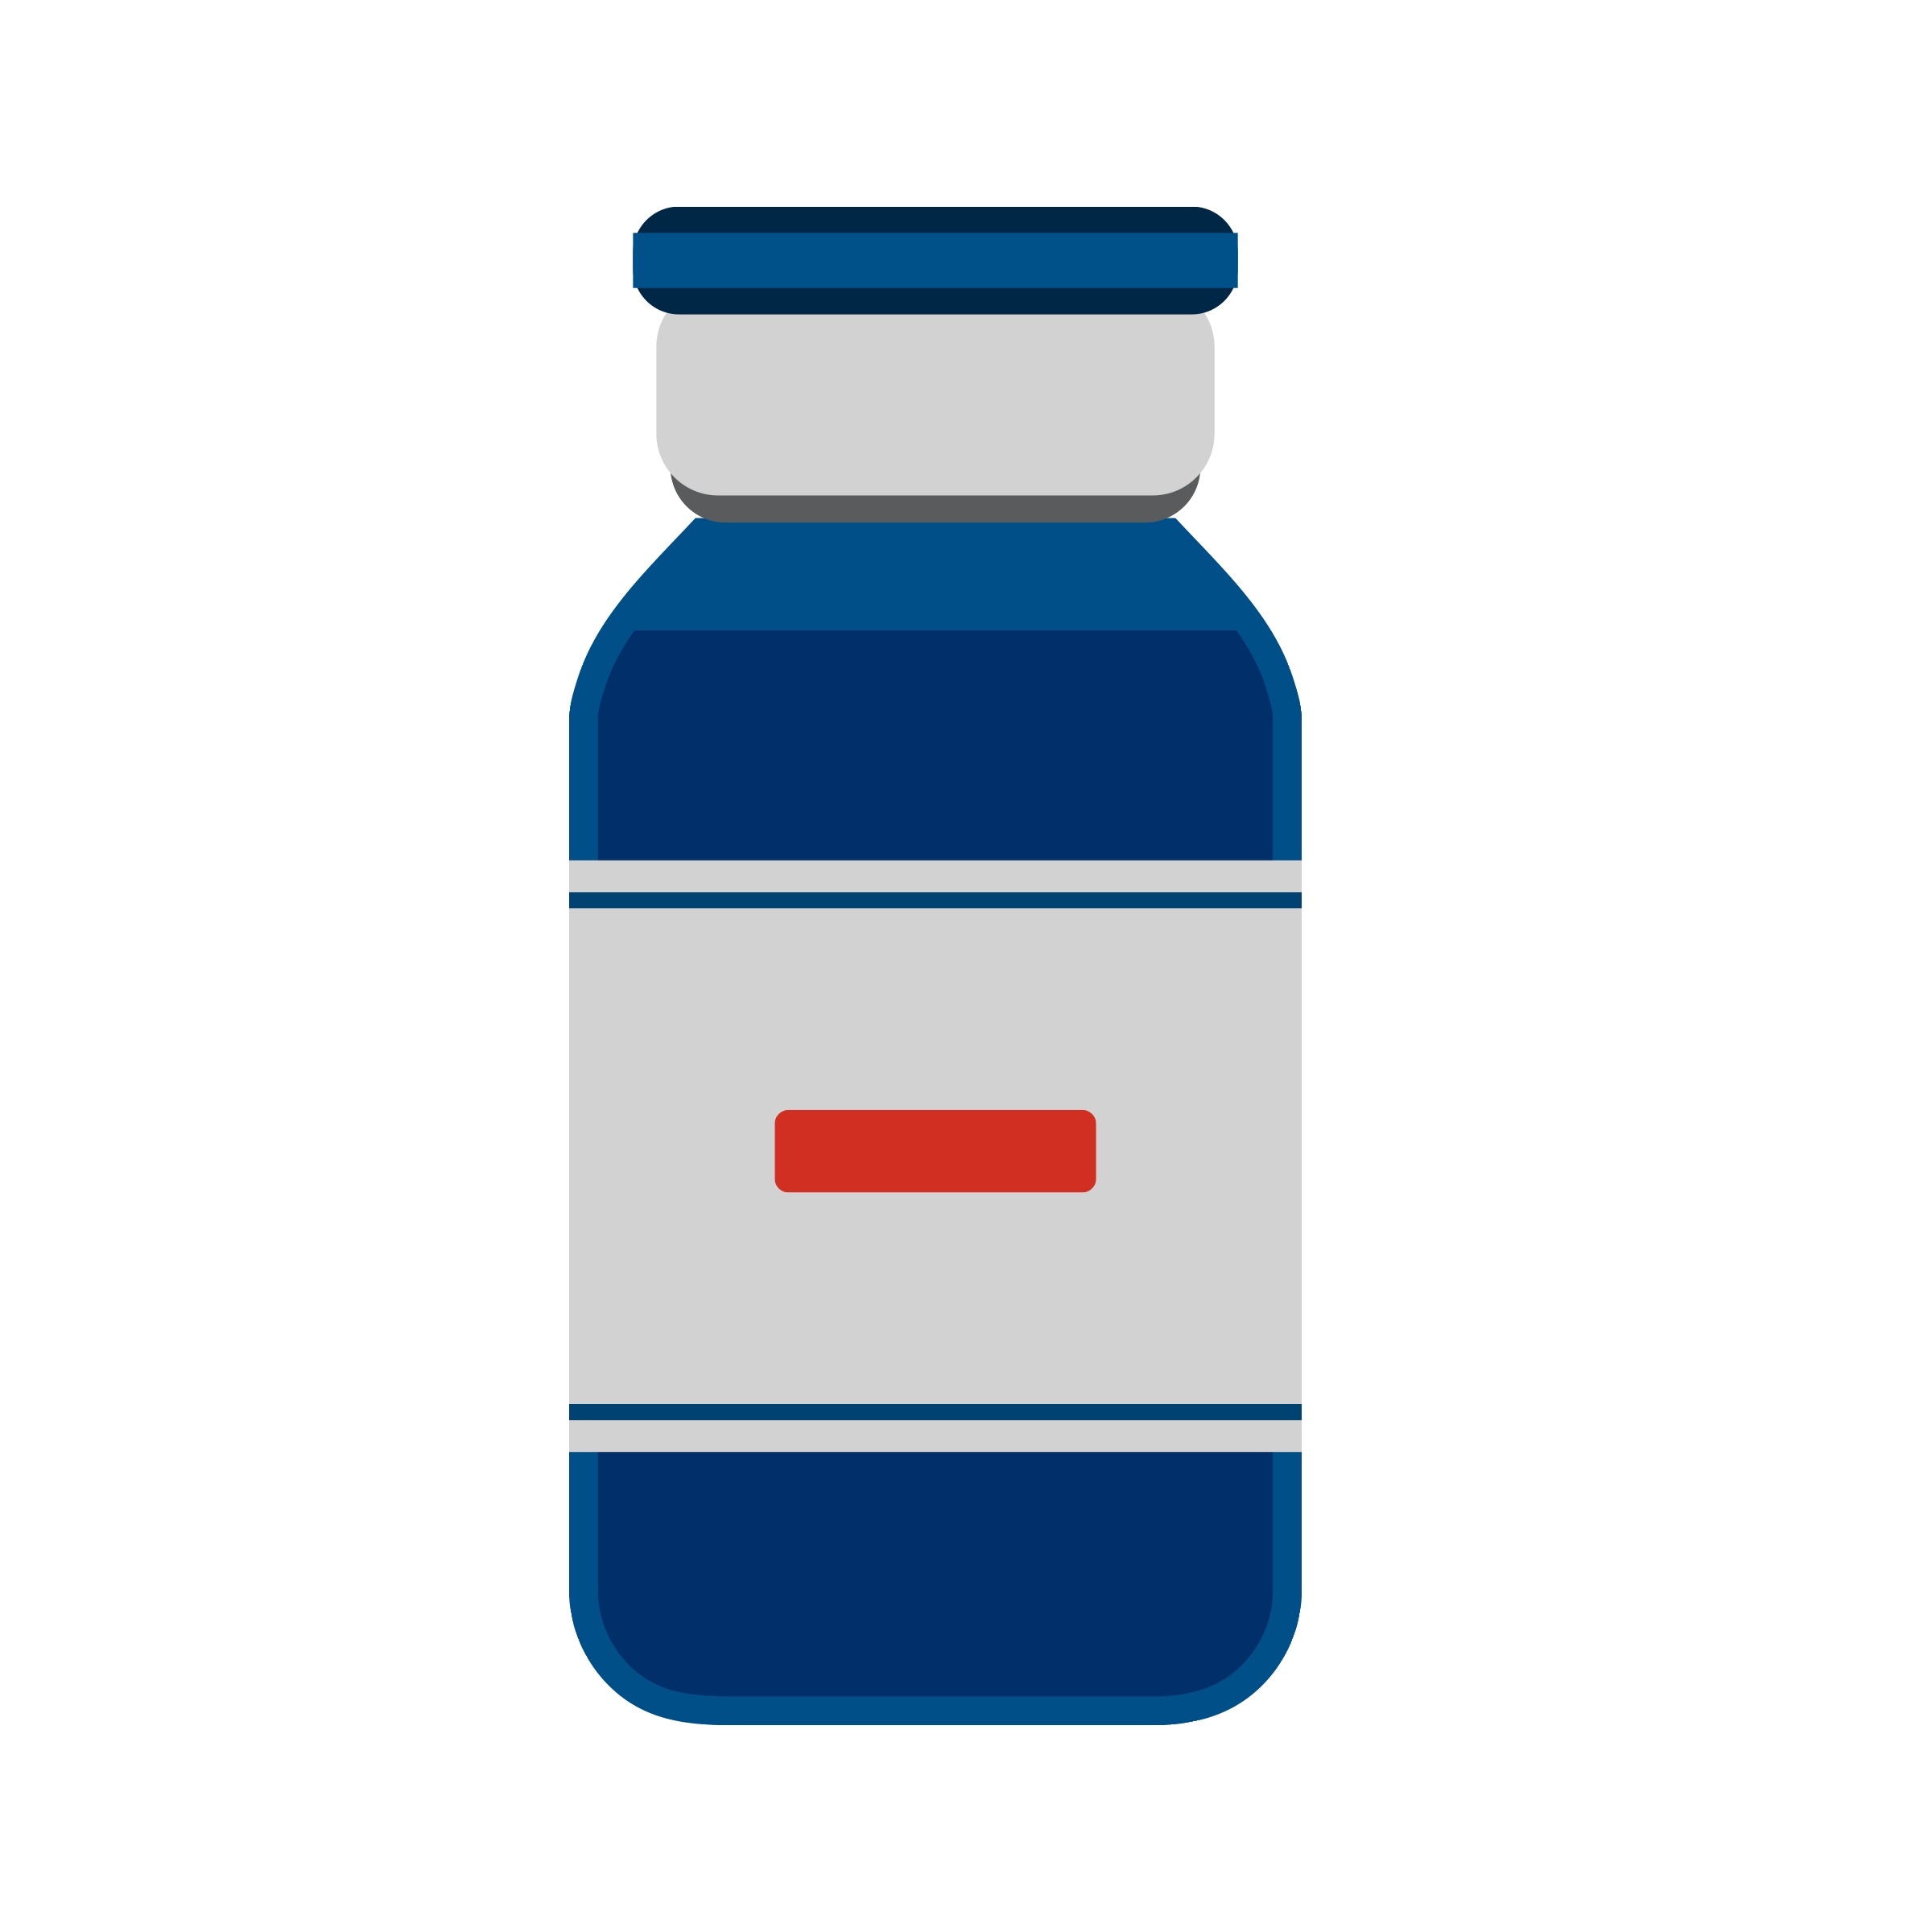 blue vaccine bottle